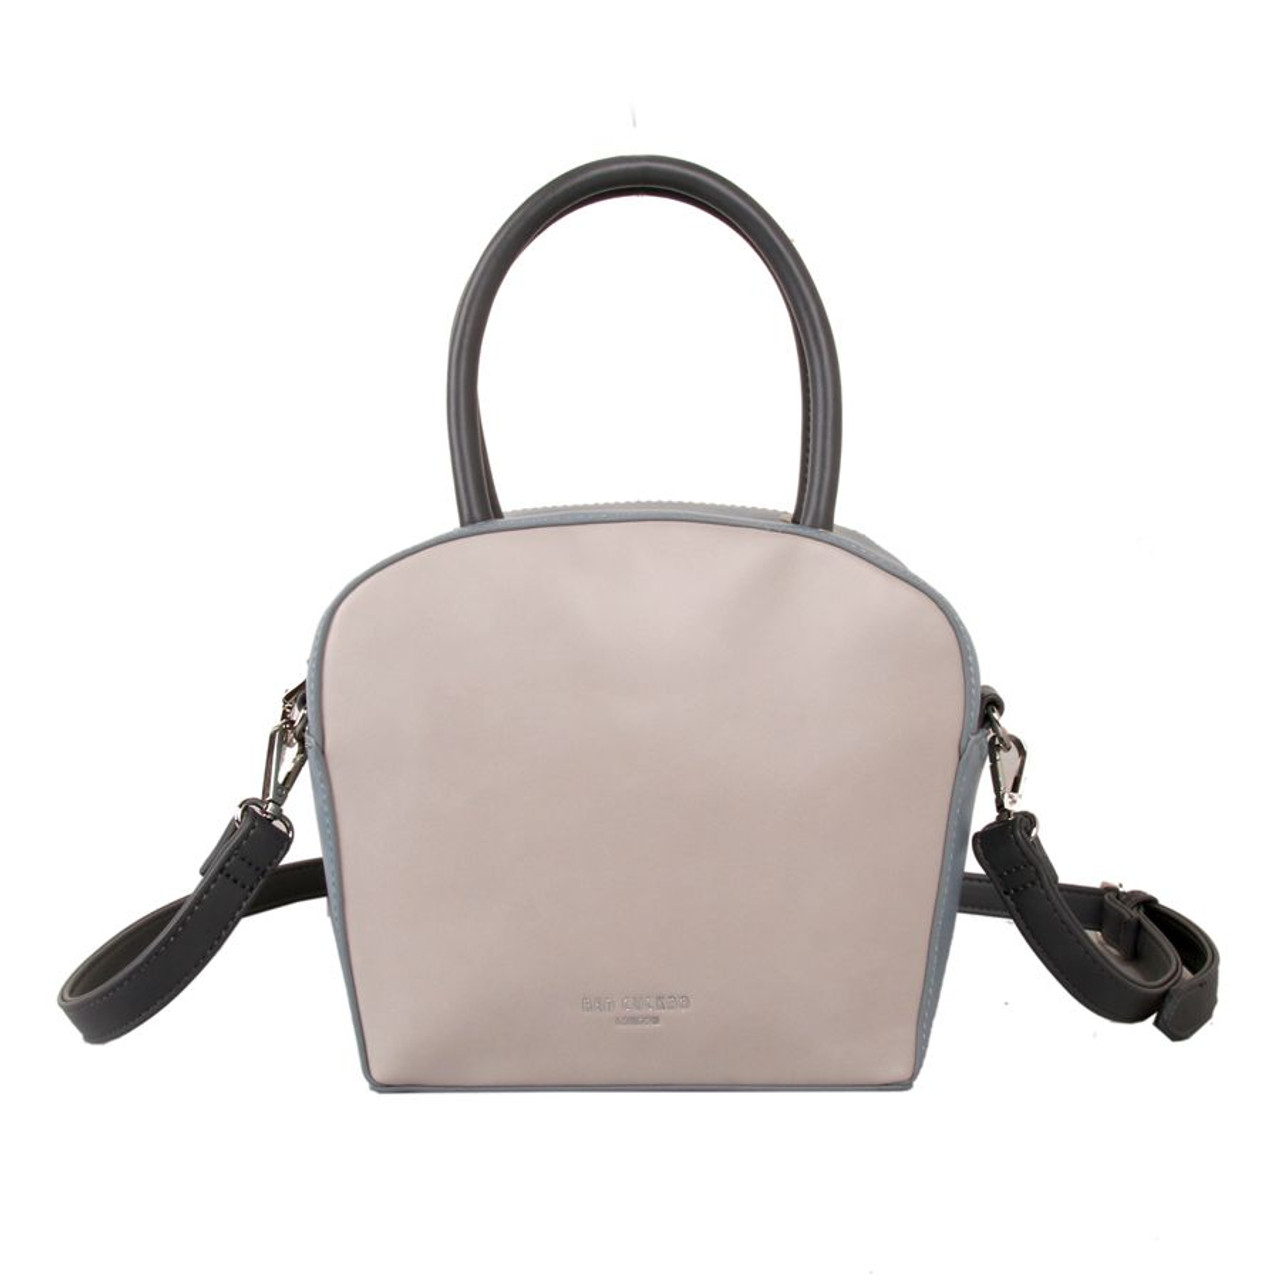 84380d56db3de Red Cuckoo Small Silver Two Tone Grab Bag - Itsy Bitsy Boutique